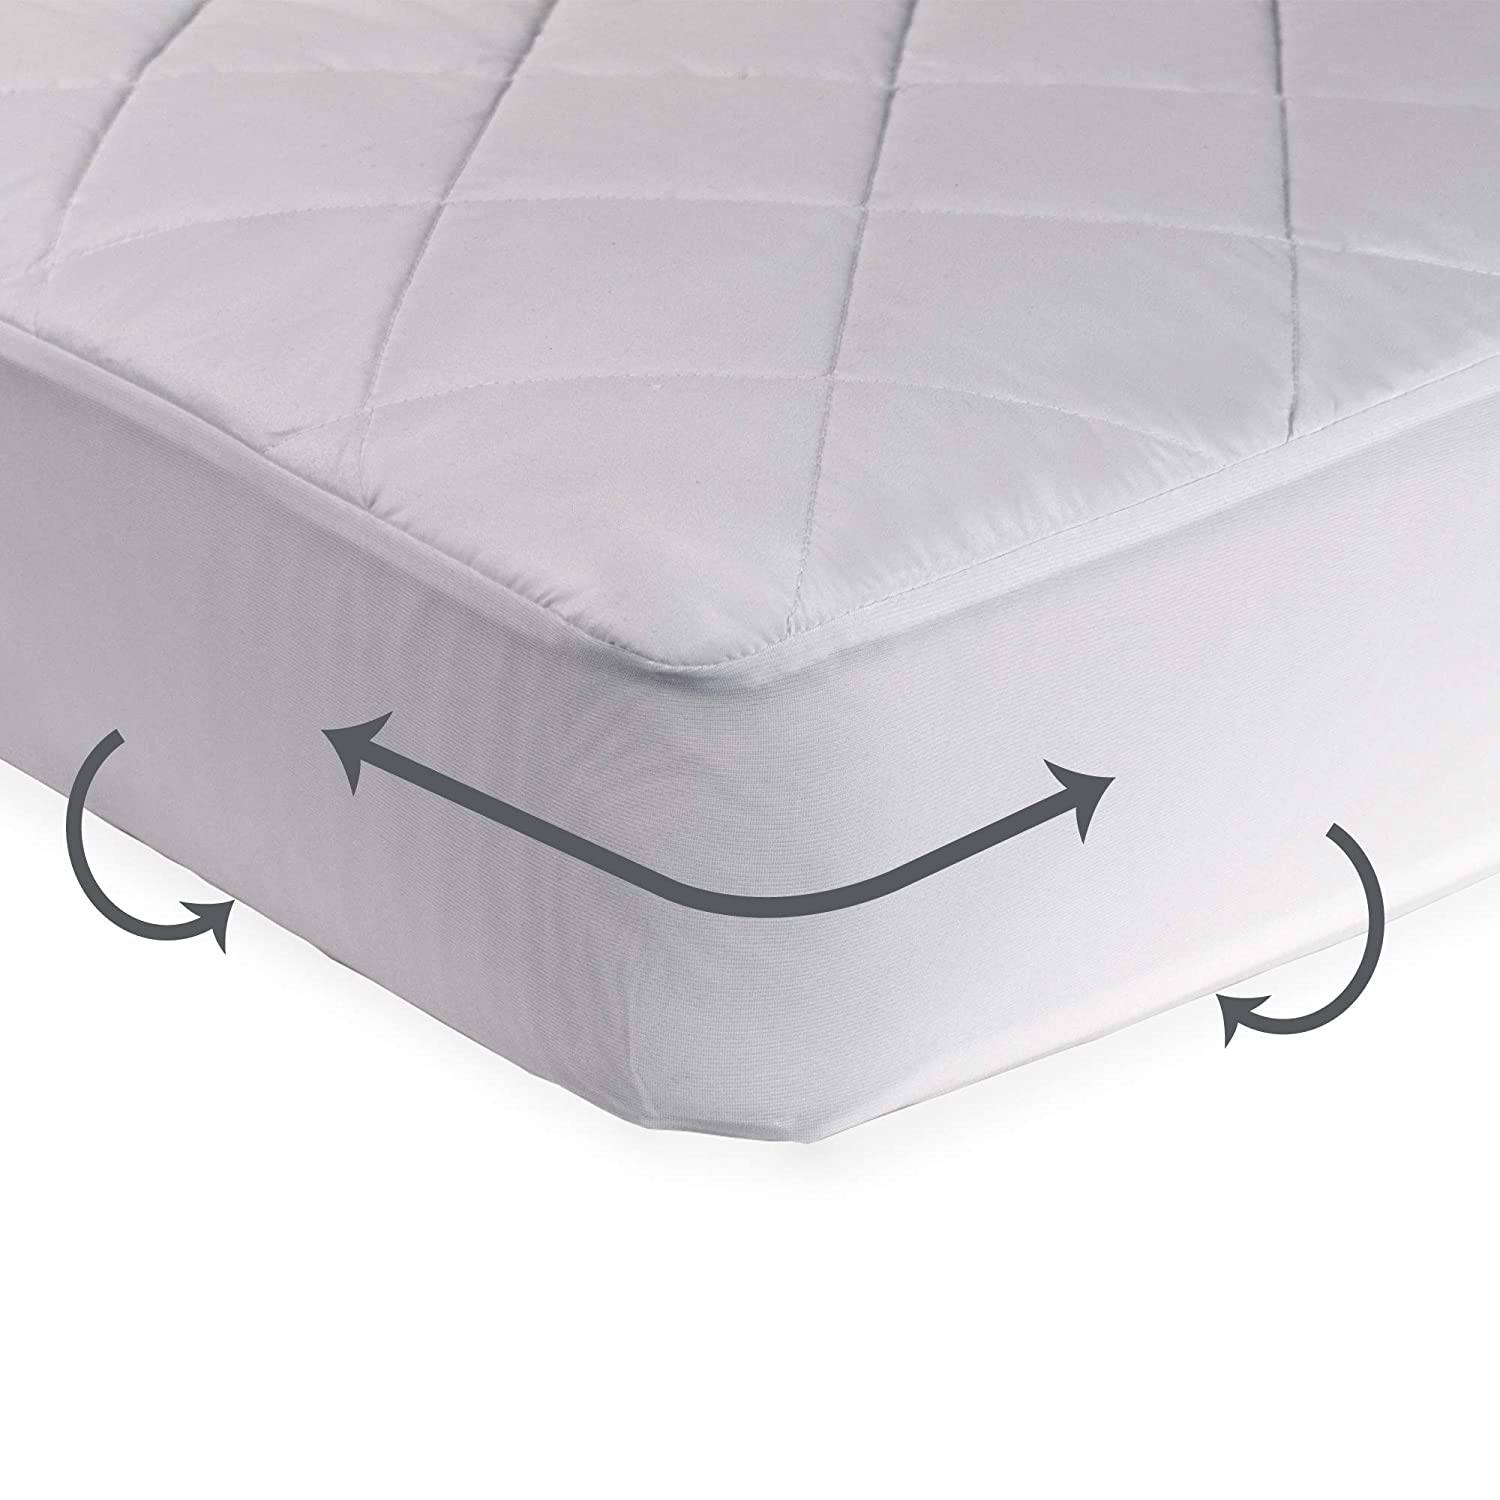 Very Helpful Crib Mattress Pad Amazon.com : Sealy Cool Comfort Fitted Infant-Toddler Crib Mattress Pad -  Moisture Wicking, 100% Waterproof Layer, Hypoallergenic, Deep Fitted Skirt,  ...